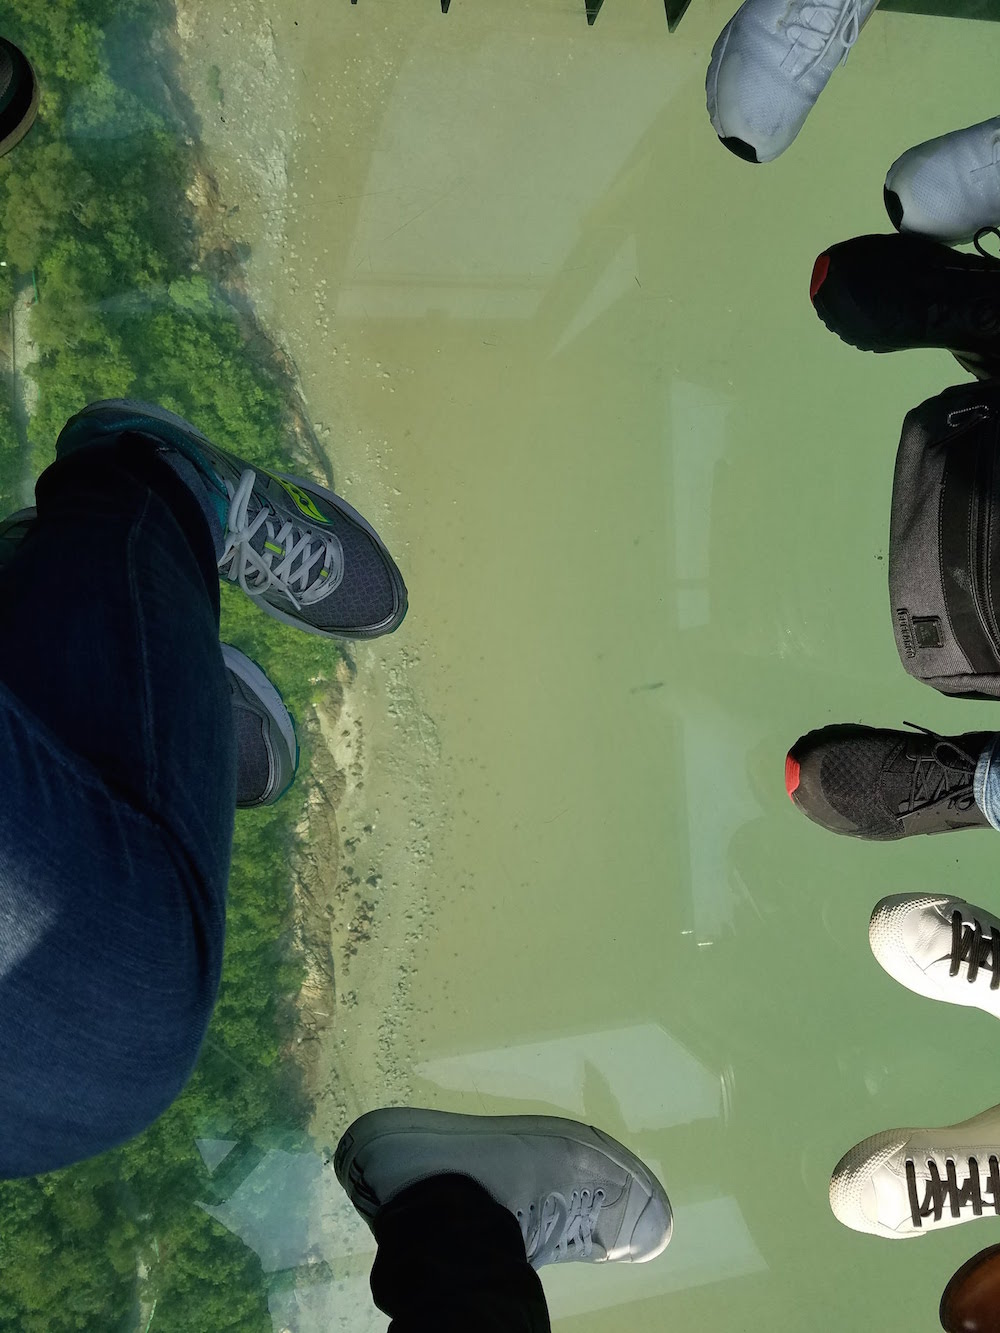 The view down below….